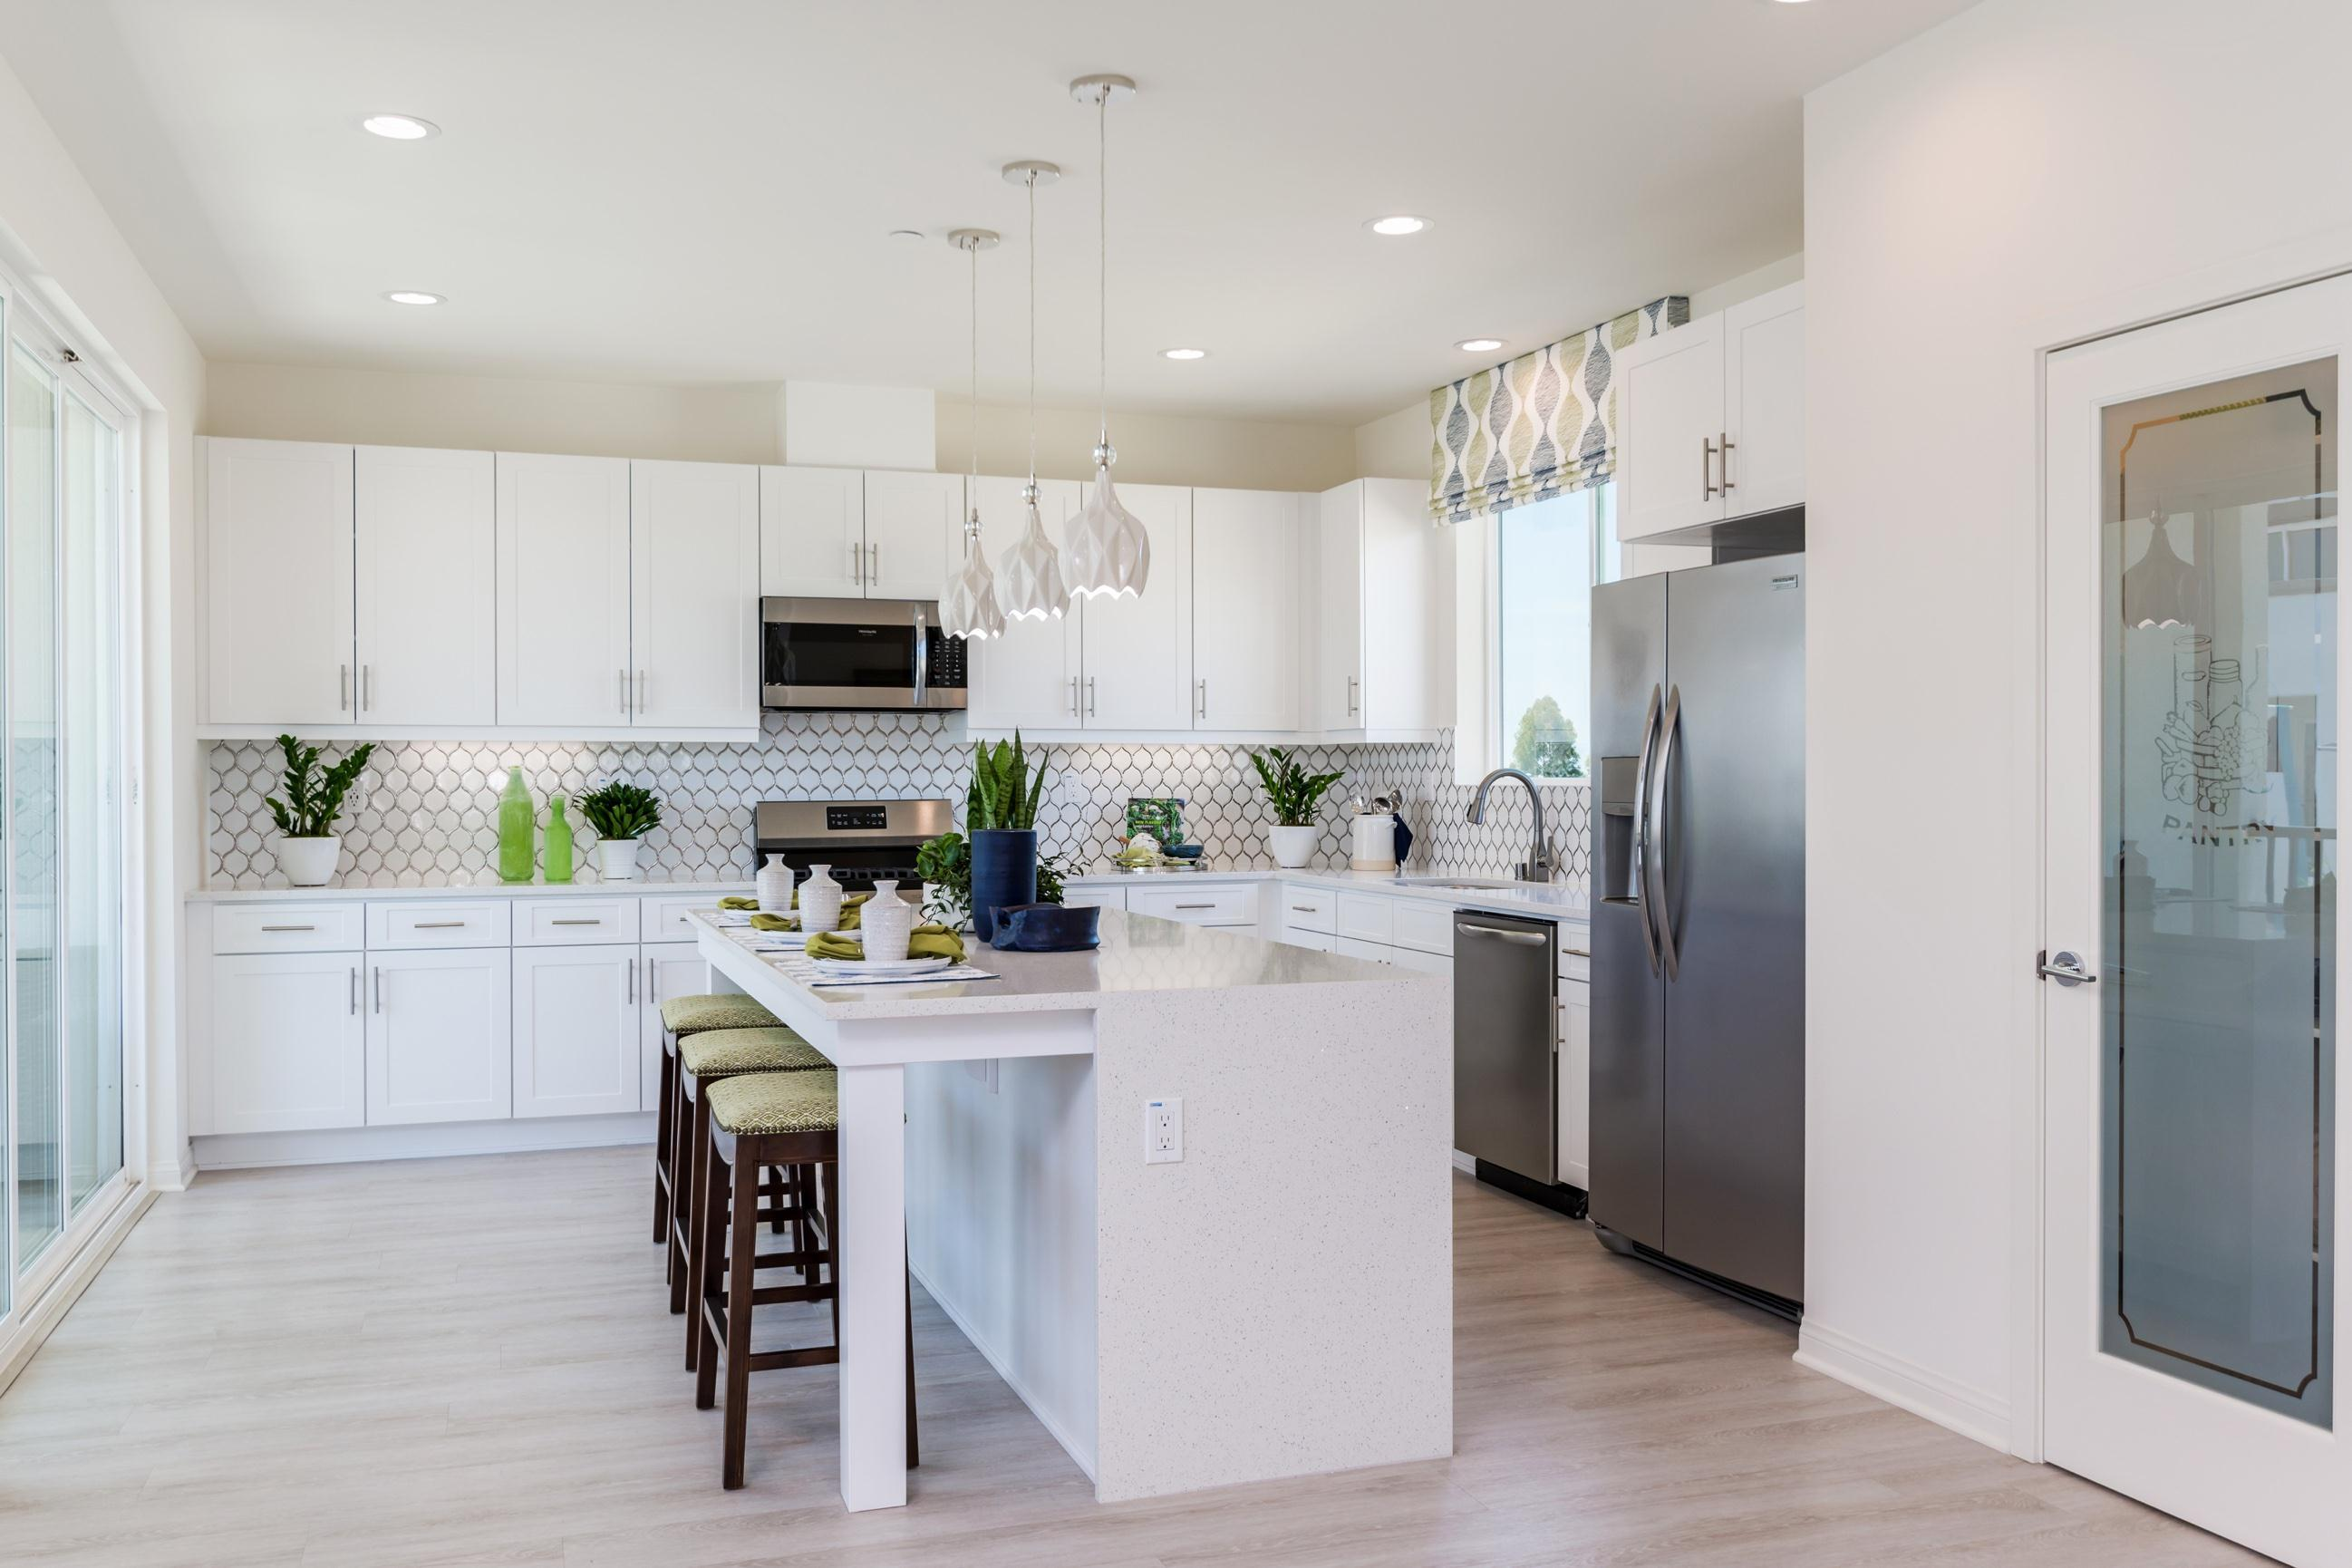 Kitchen featured in the Plan 3 By Heritage Building & Dev't in San Diego, CA